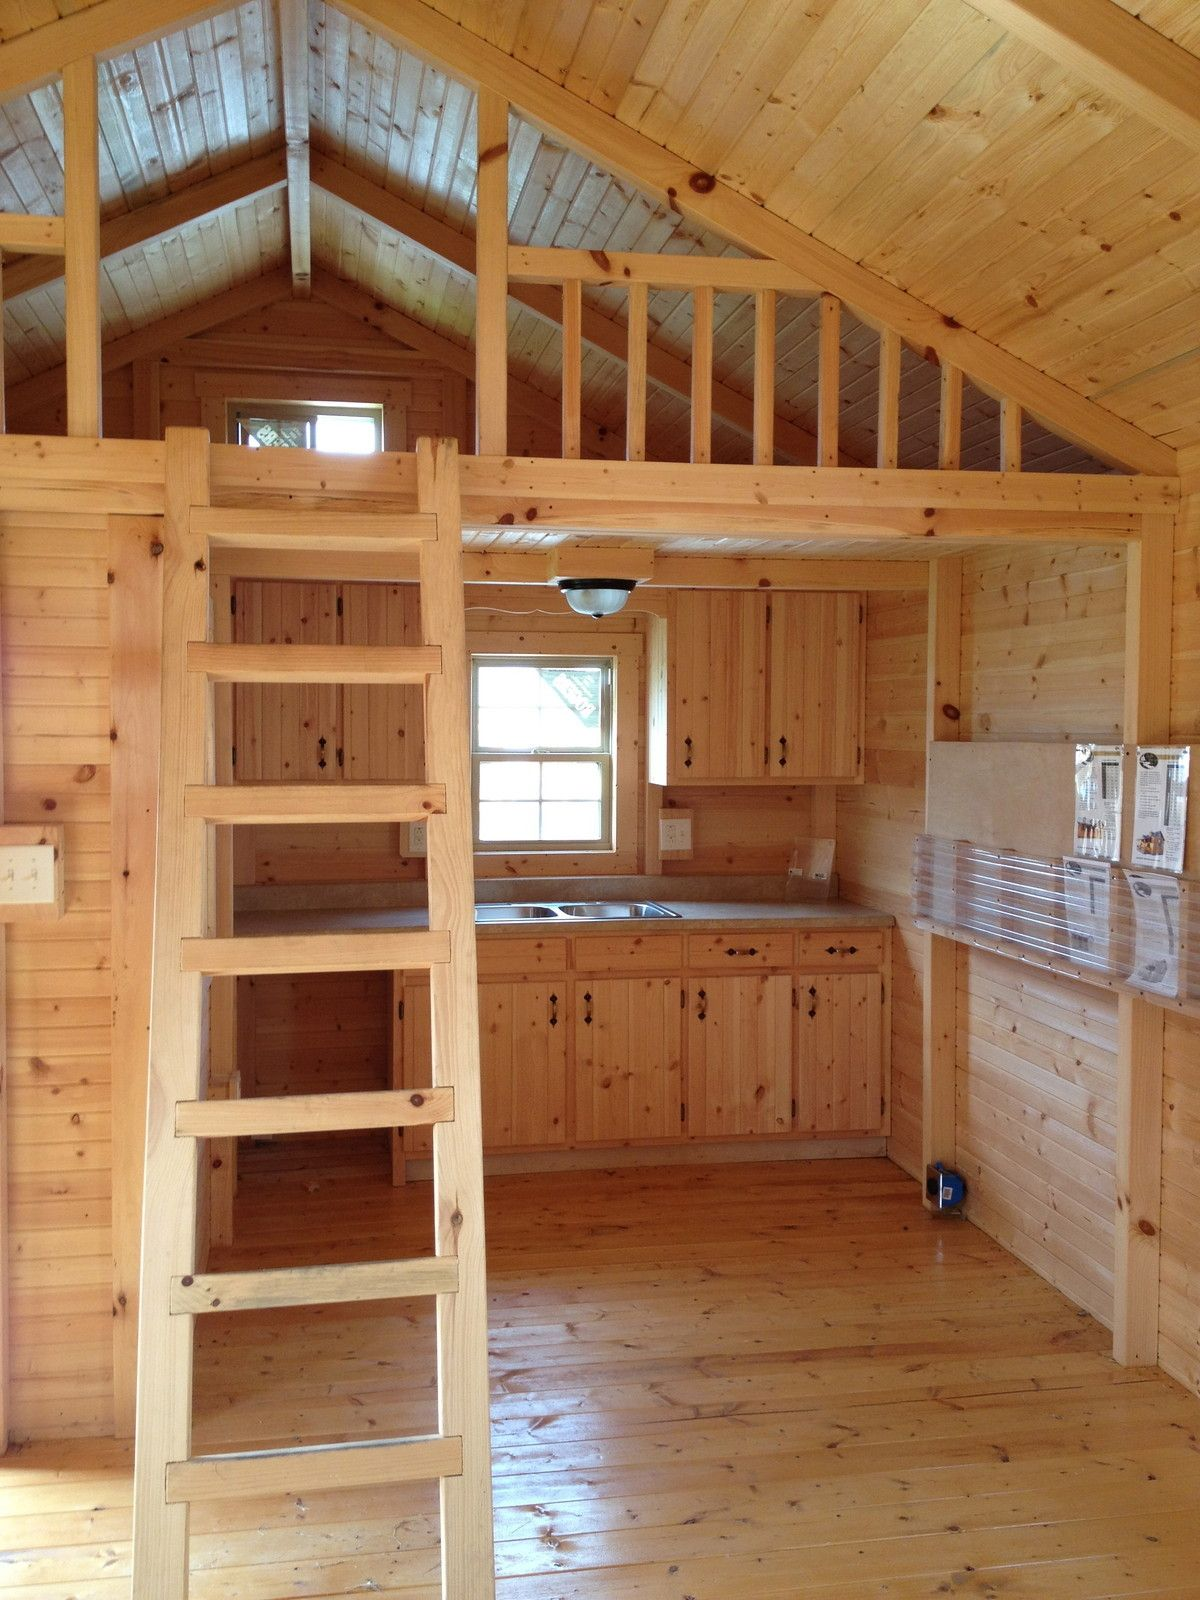 Tiny house ebay 14x24 cabin kit tiny homes pinterest for How to build a small cabin with a loft